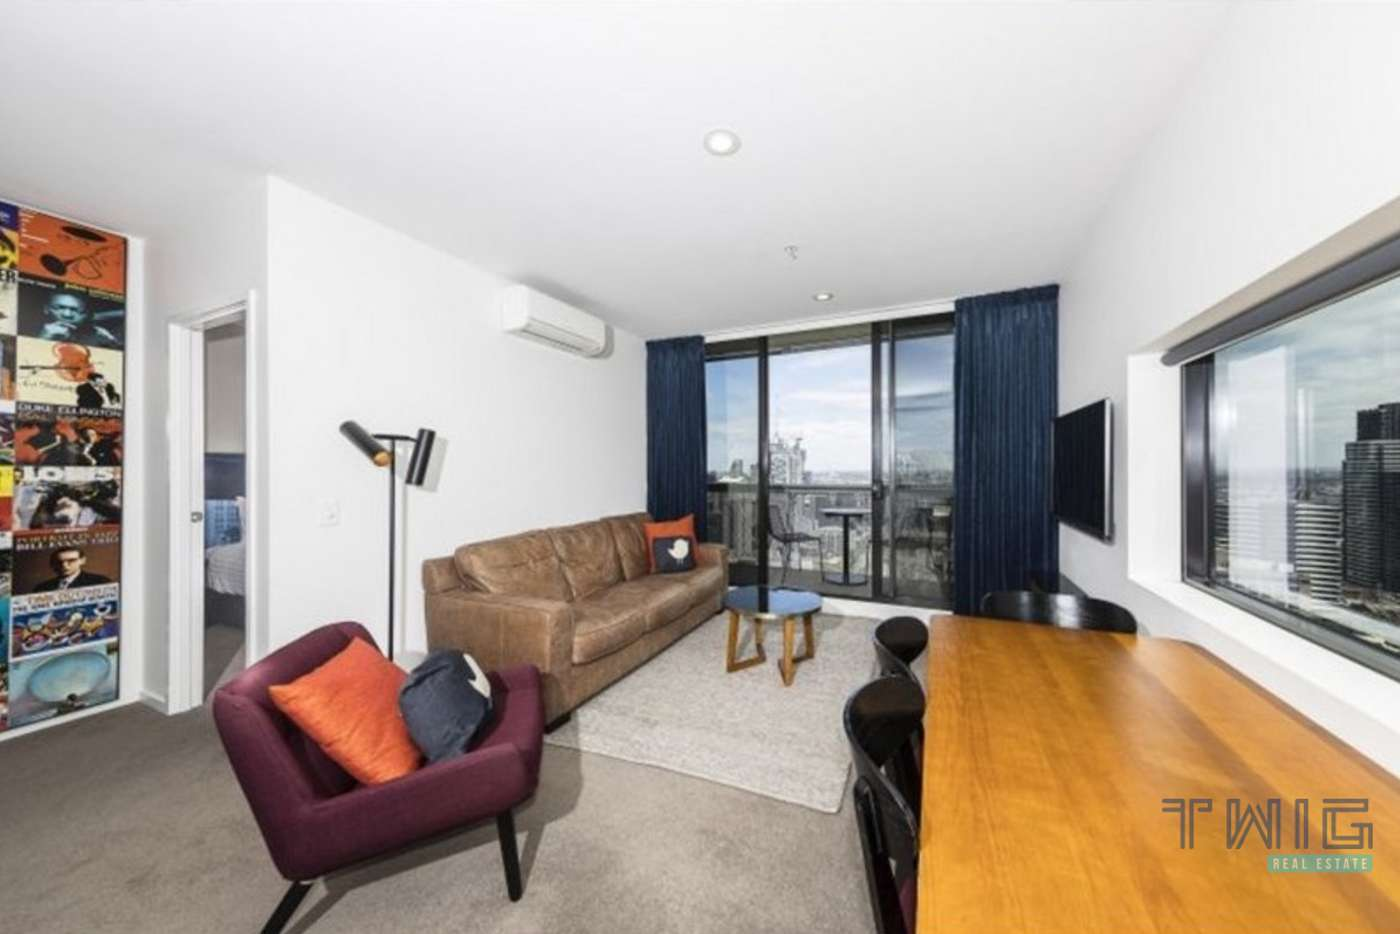 Main view of Homely apartment listing, 2 Bedroom/350 William Street, Melbourne VIC 3000